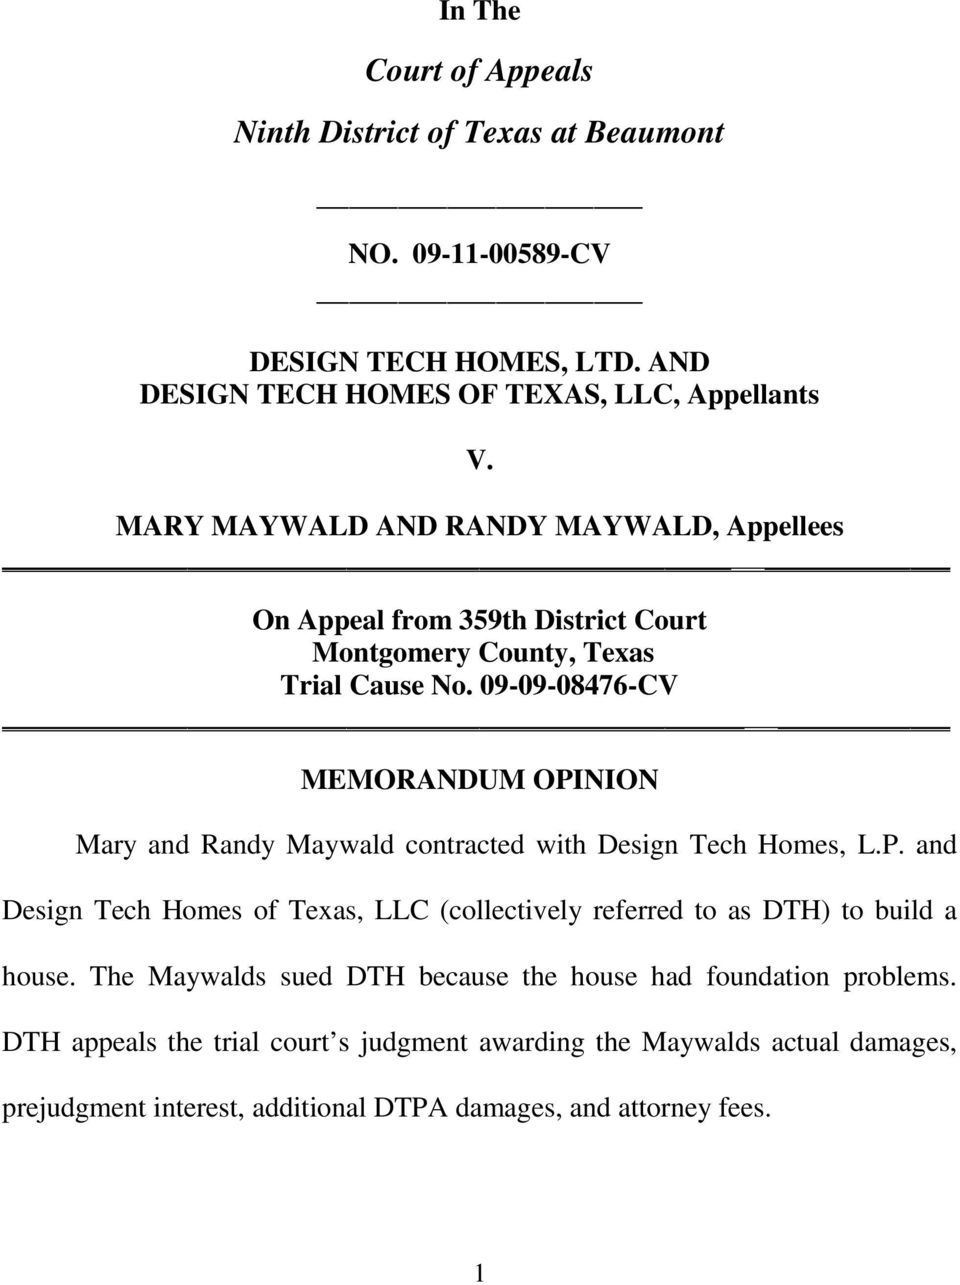 09-09-08476-CV MEMORANDUM OPINION Mary and Randy Maywald contracted with Design Tech Homes, L.P. and Design Tech Homes of Texas, LLC (collectively referred to as DTH) to build a house.